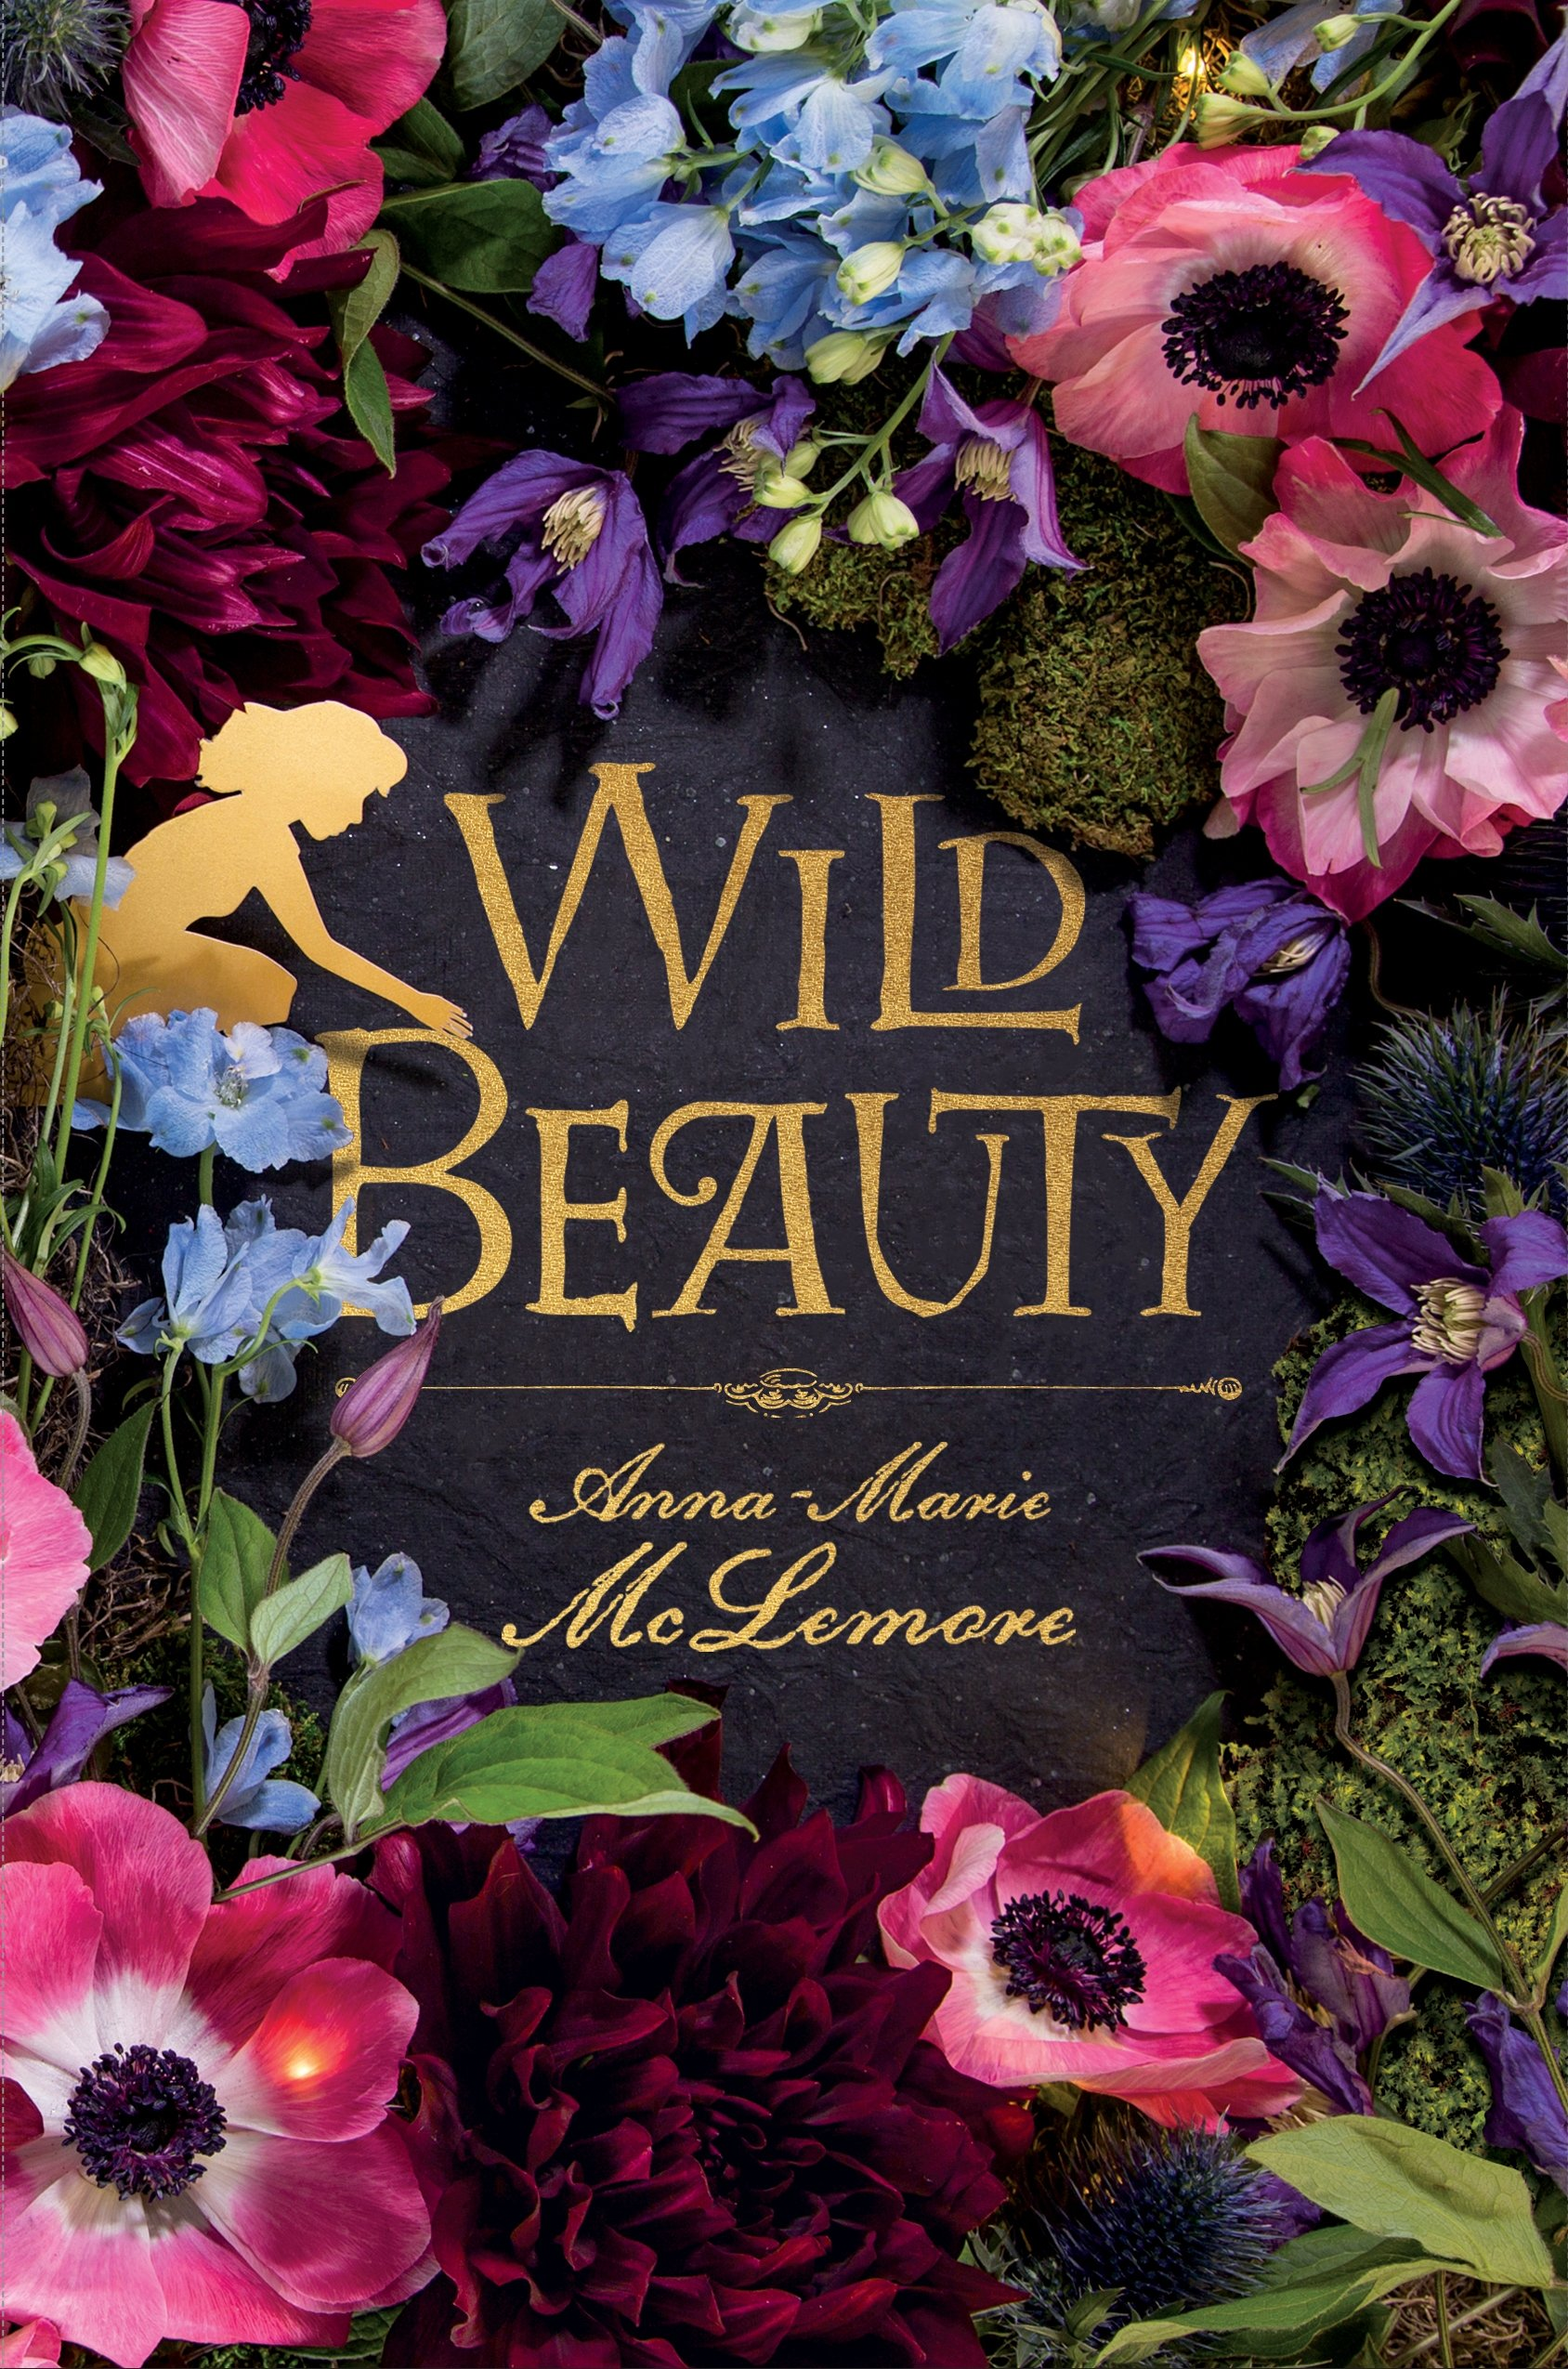 Amazon.com: Wild Beauty: A Novel (9781250124555): McLemore, Anna-Marie:  Books